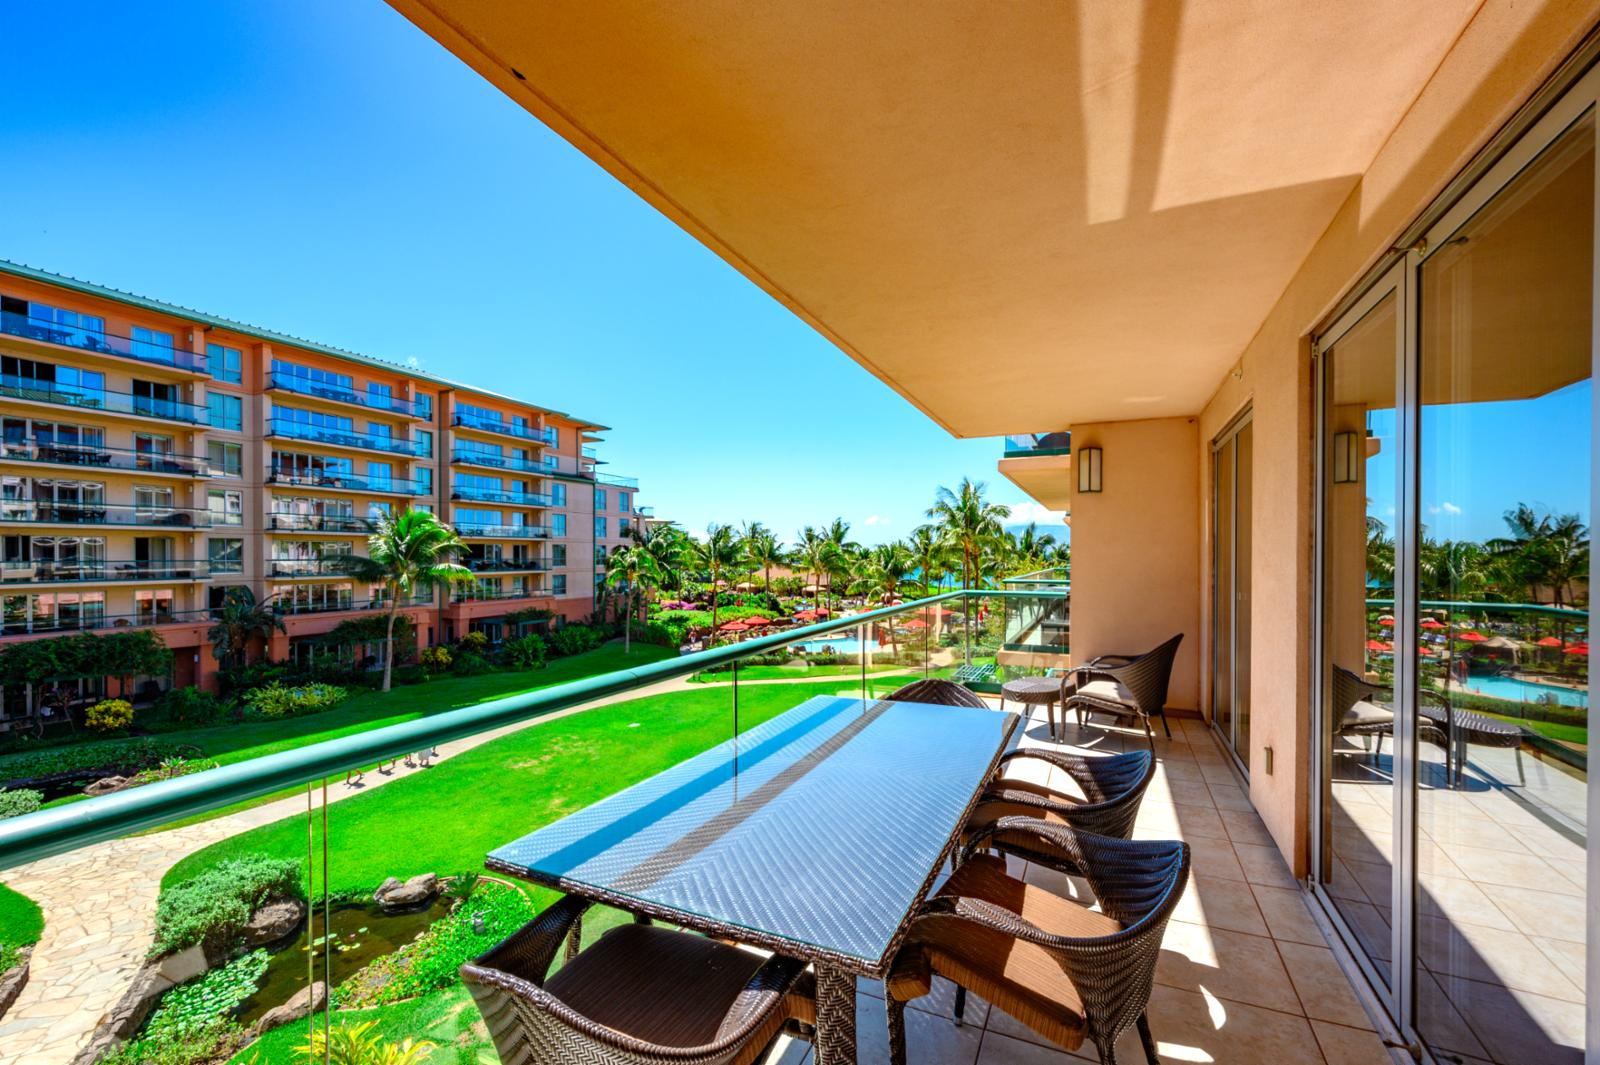 Lanai with Pool View and table for dining